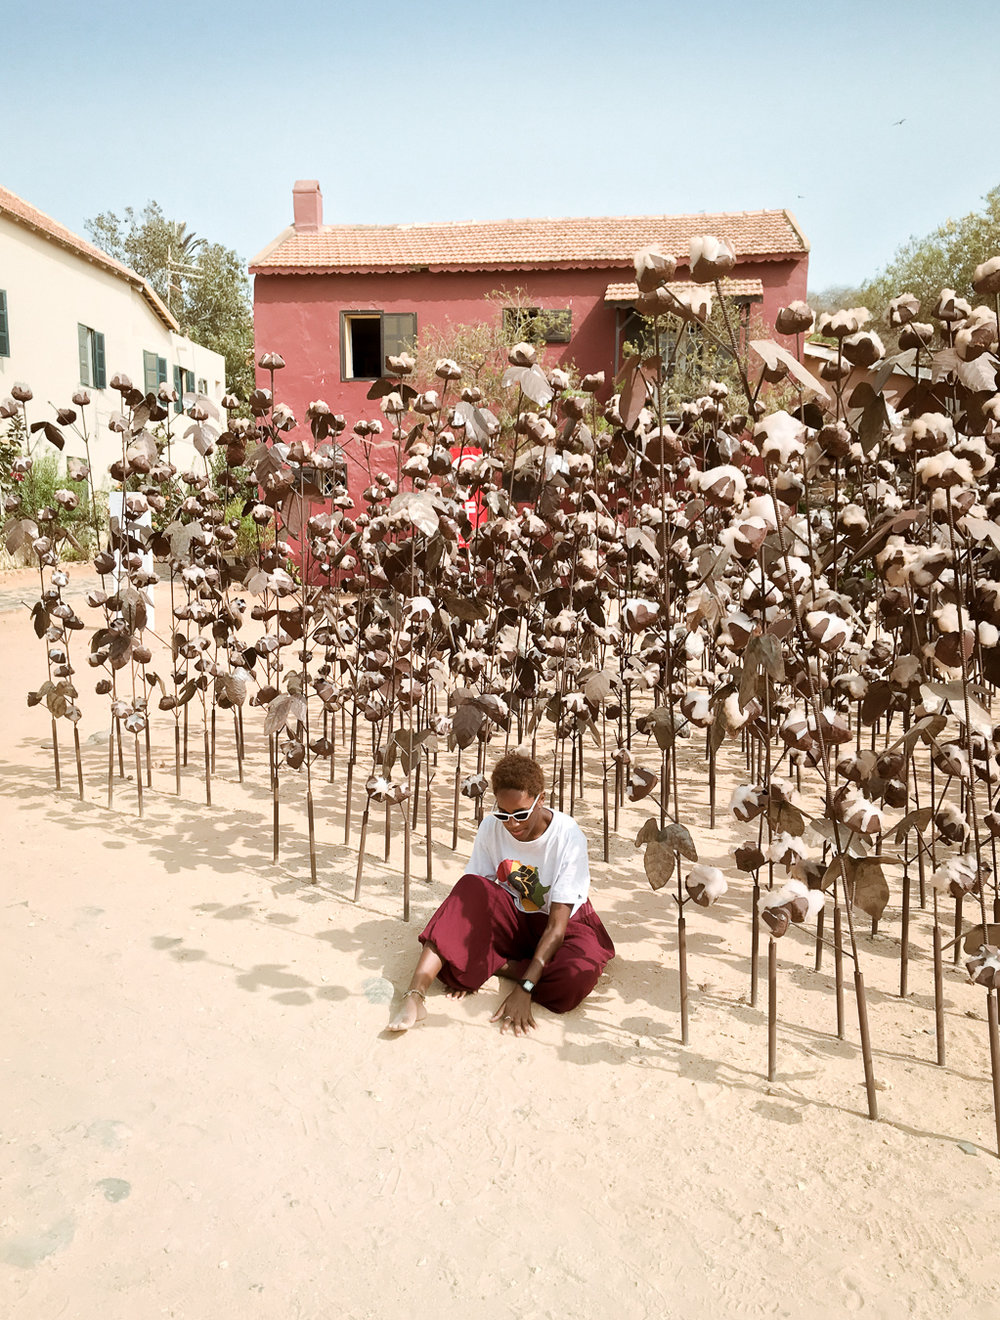 Dak'art biennale 2018 cotton pickin goree island.jpg